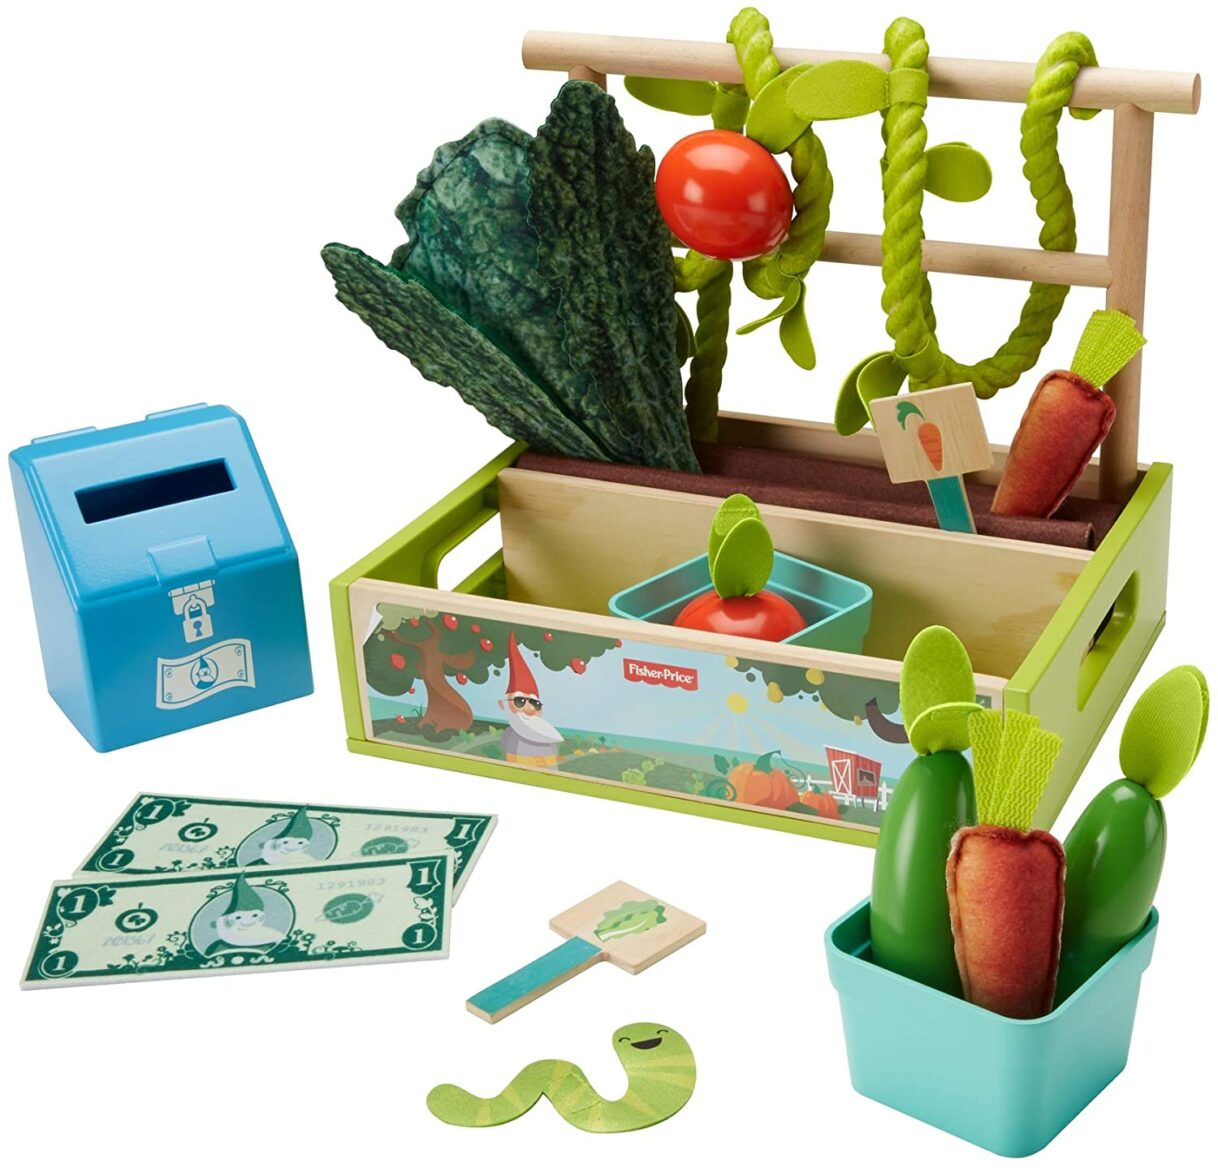 Life's a Garden Dig It: Fisher-Price Farm-to-Market Stand